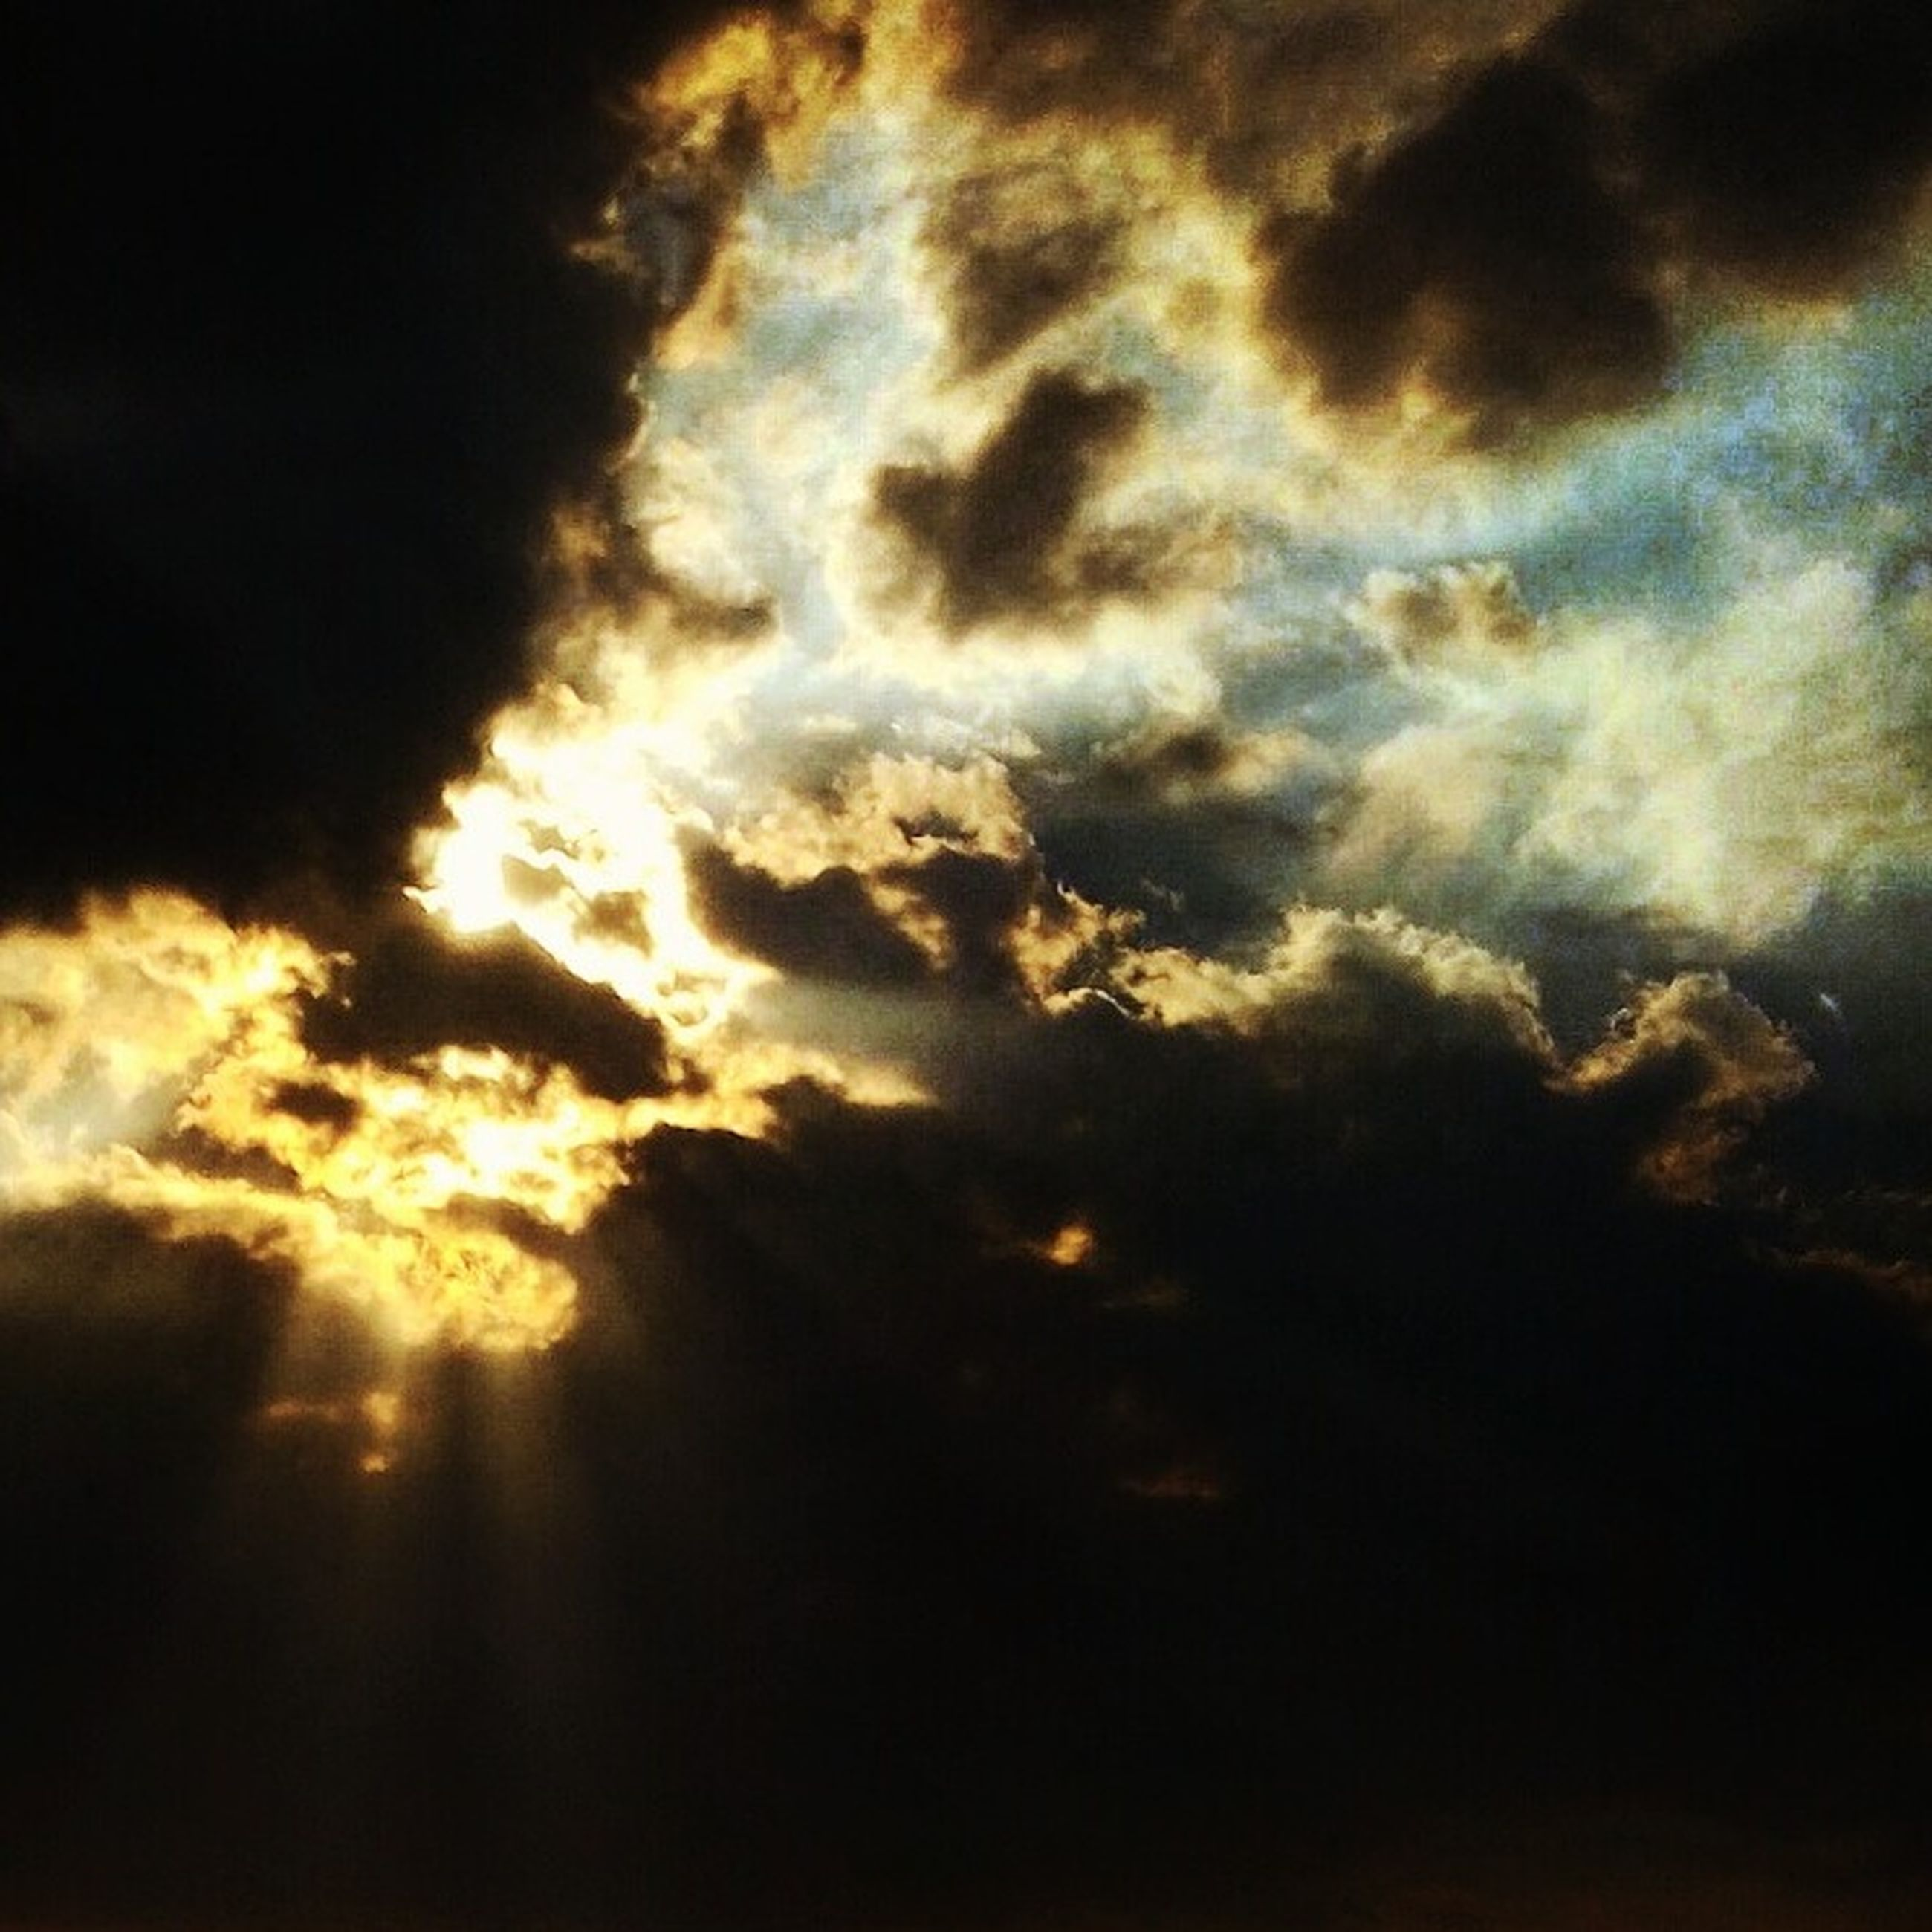 scenics, tranquility, tranquil scene, beauty in nature, low angle view, sunset, sky, cloud - sky, nature, sunlight, cloudscape, idyllic, sky only, cloud, dramatic sky, majestic, outdoors, sunbeam, glowing, atmospheric mood, cloudy, back lit, sun, storm cloud, dreamlike, bright, meteorology, atmosphere, heaven